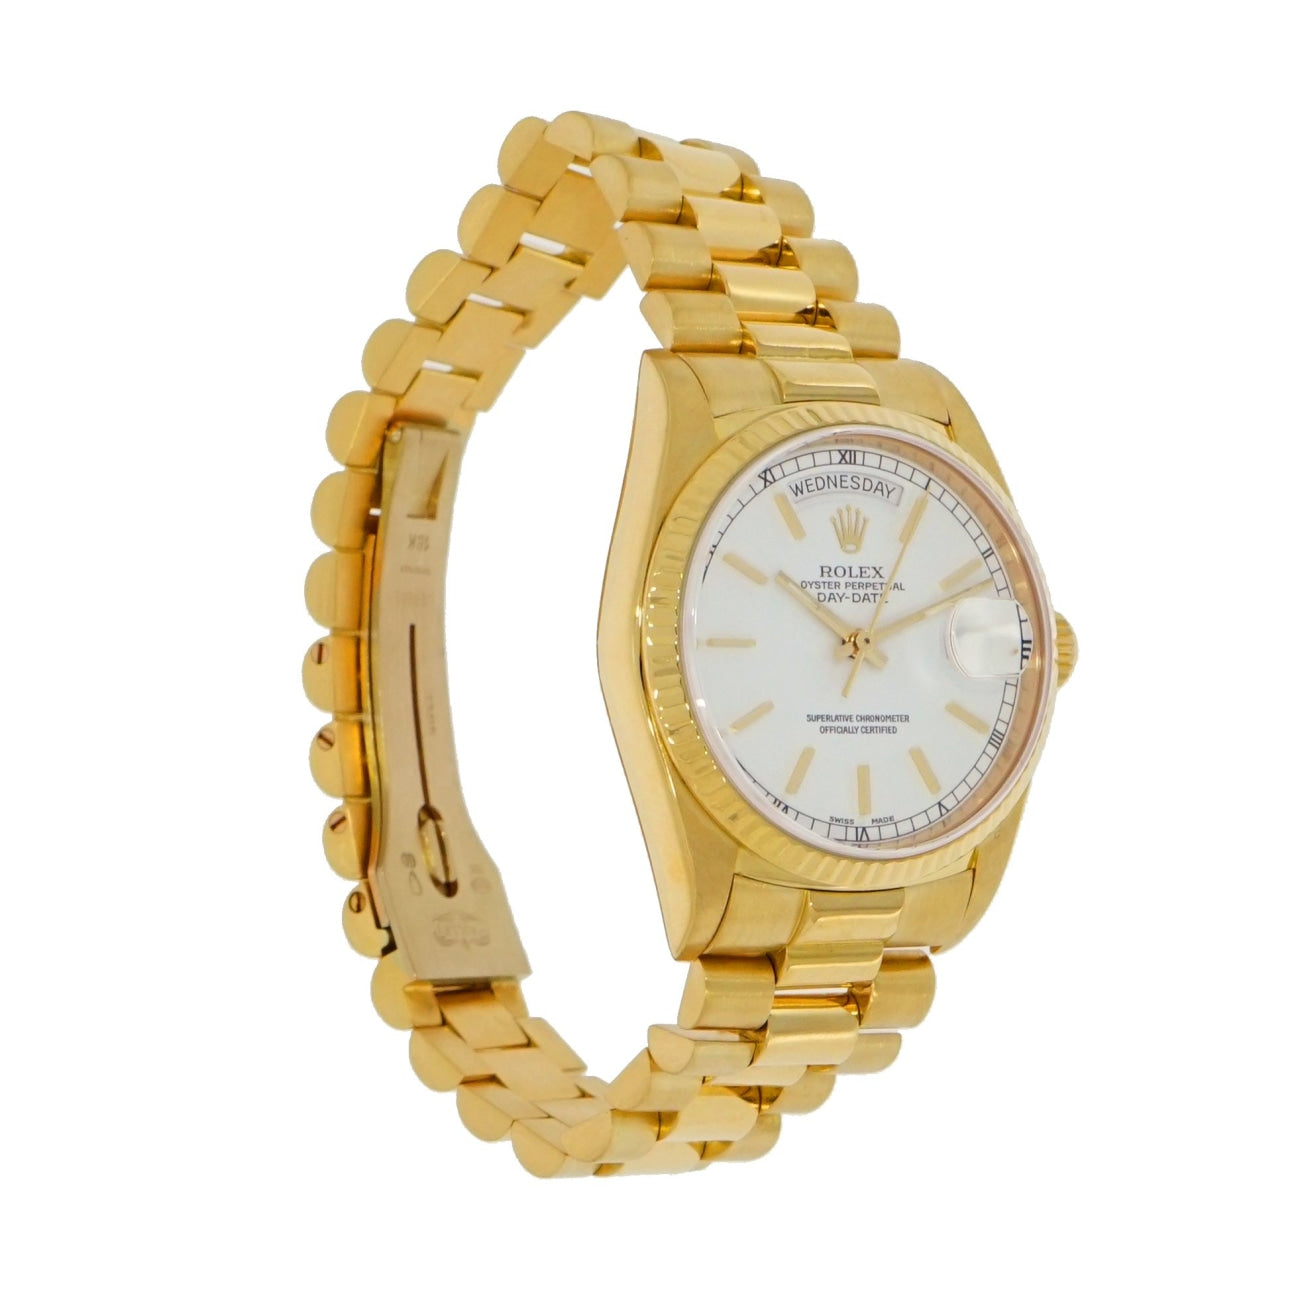 Pre-Owned Rolex Watches - day-date 18038 | Manfredi Jewels